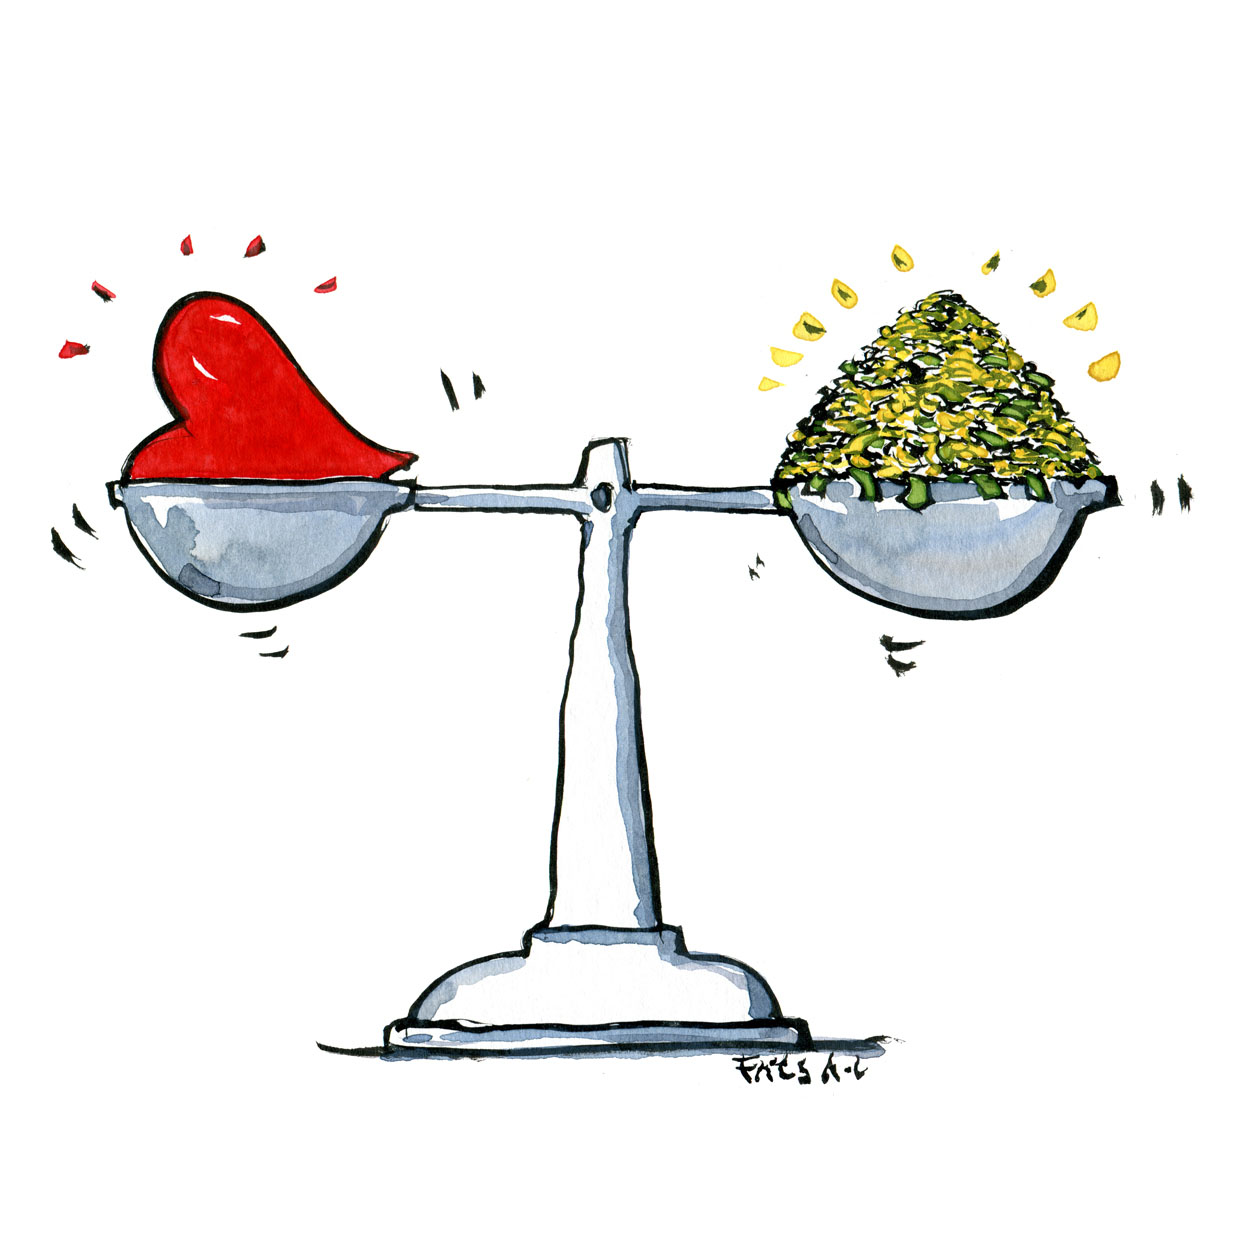 Illustration of a scale with a heart on one side and money on the other. drawing by Frits Ahlefeldt